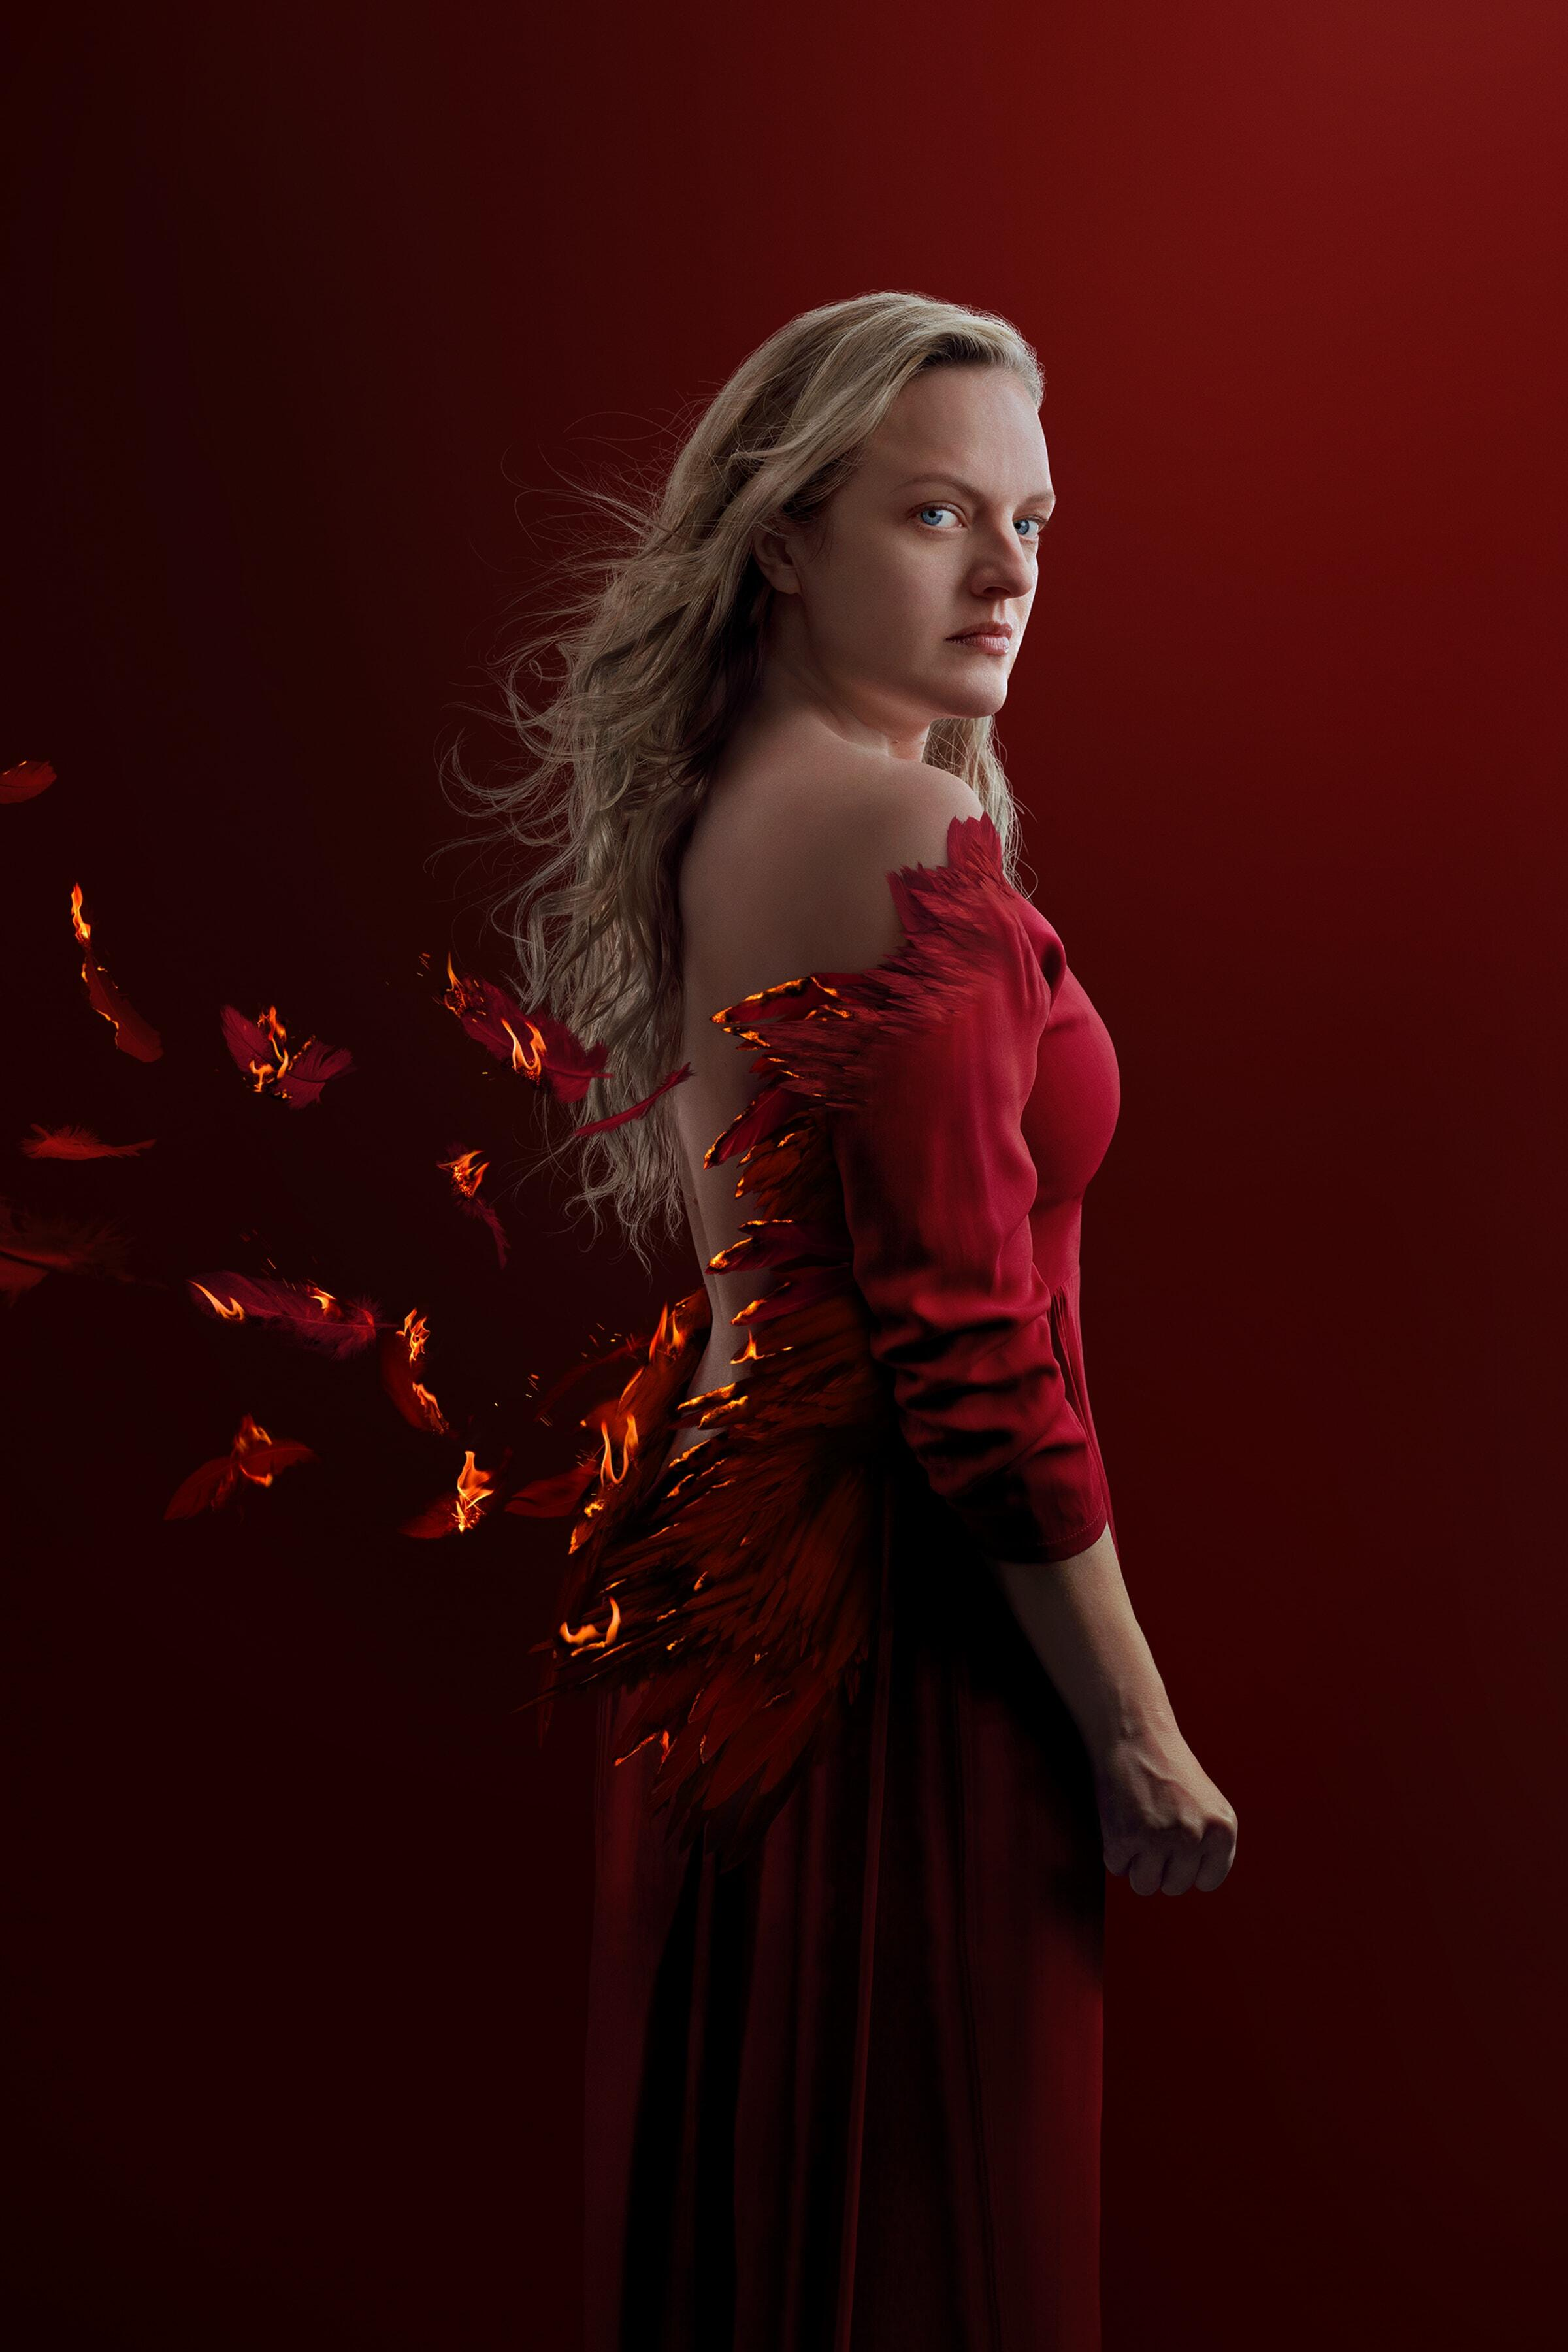 The Handmaid's Tale -- In the upcoming fourth season of The Handmaid's Tale, June (Elisabeth Moss) strikes back against Gilead as a fierce rebel leader, but the risks she takes bring unexpected and dangerous new challenges. Her quest for justice and revenge threatens to consume her and destroy her most cherished relationships. June (Elizabeth Moss), shown (Photo by: Robert Ascroft/Hulu)